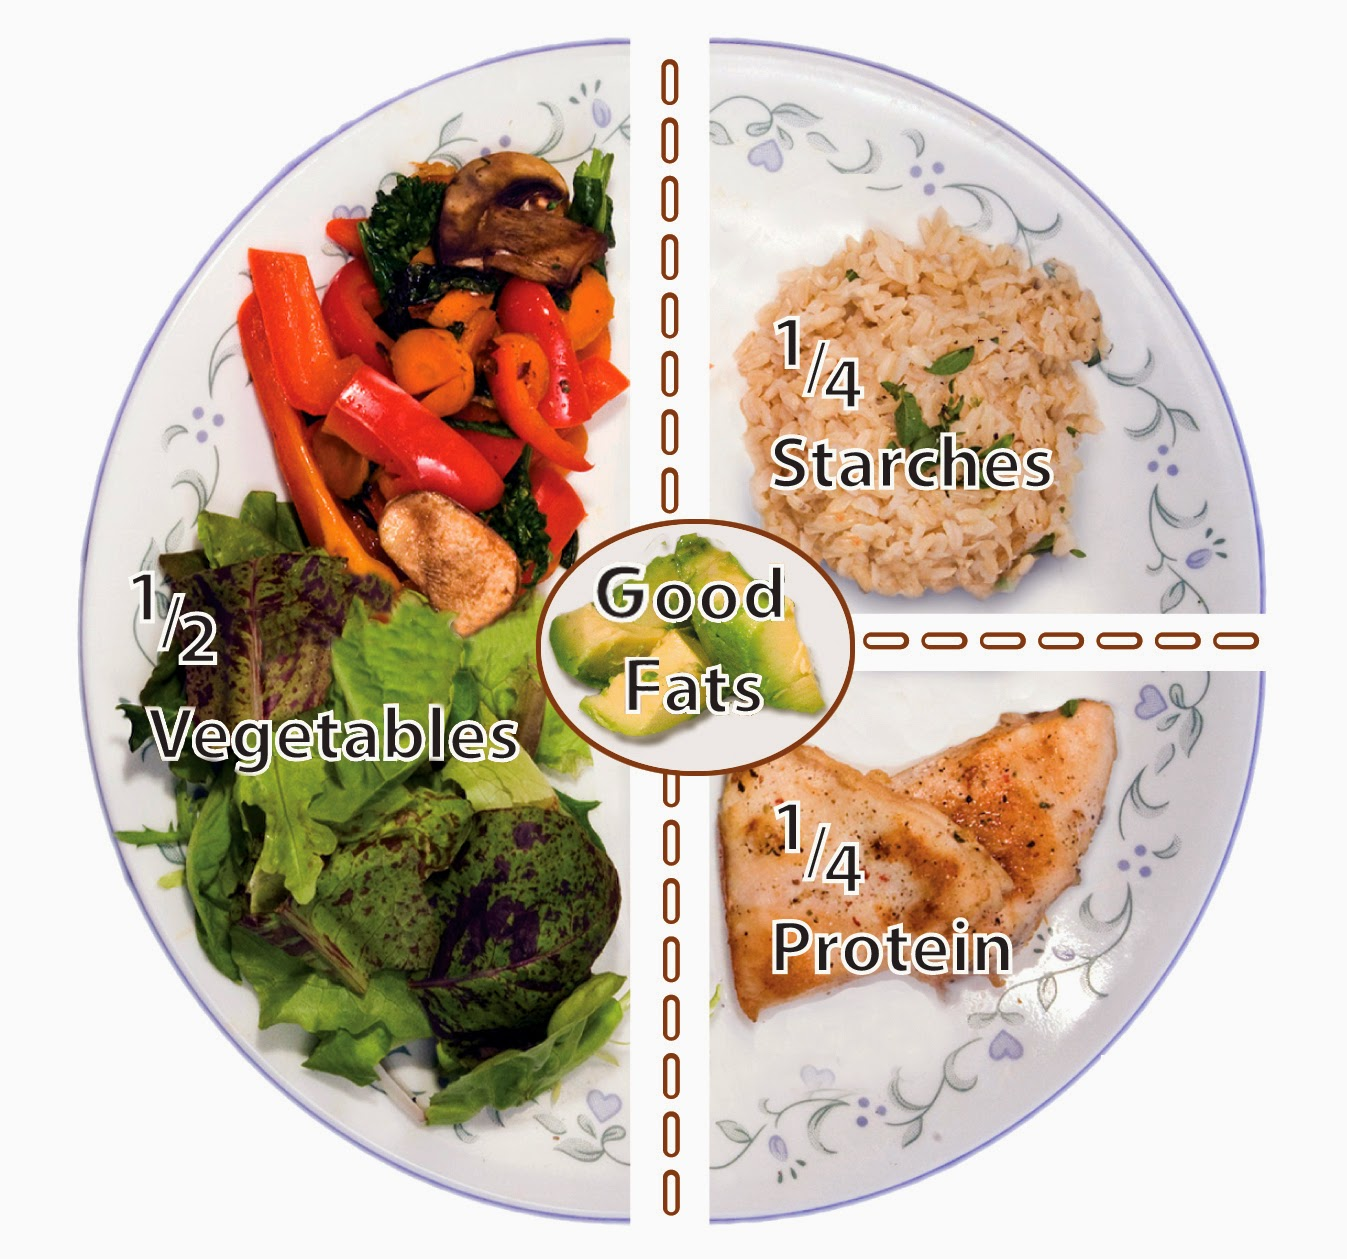 Lean Green and Healthy: What does a balanced meal look like?